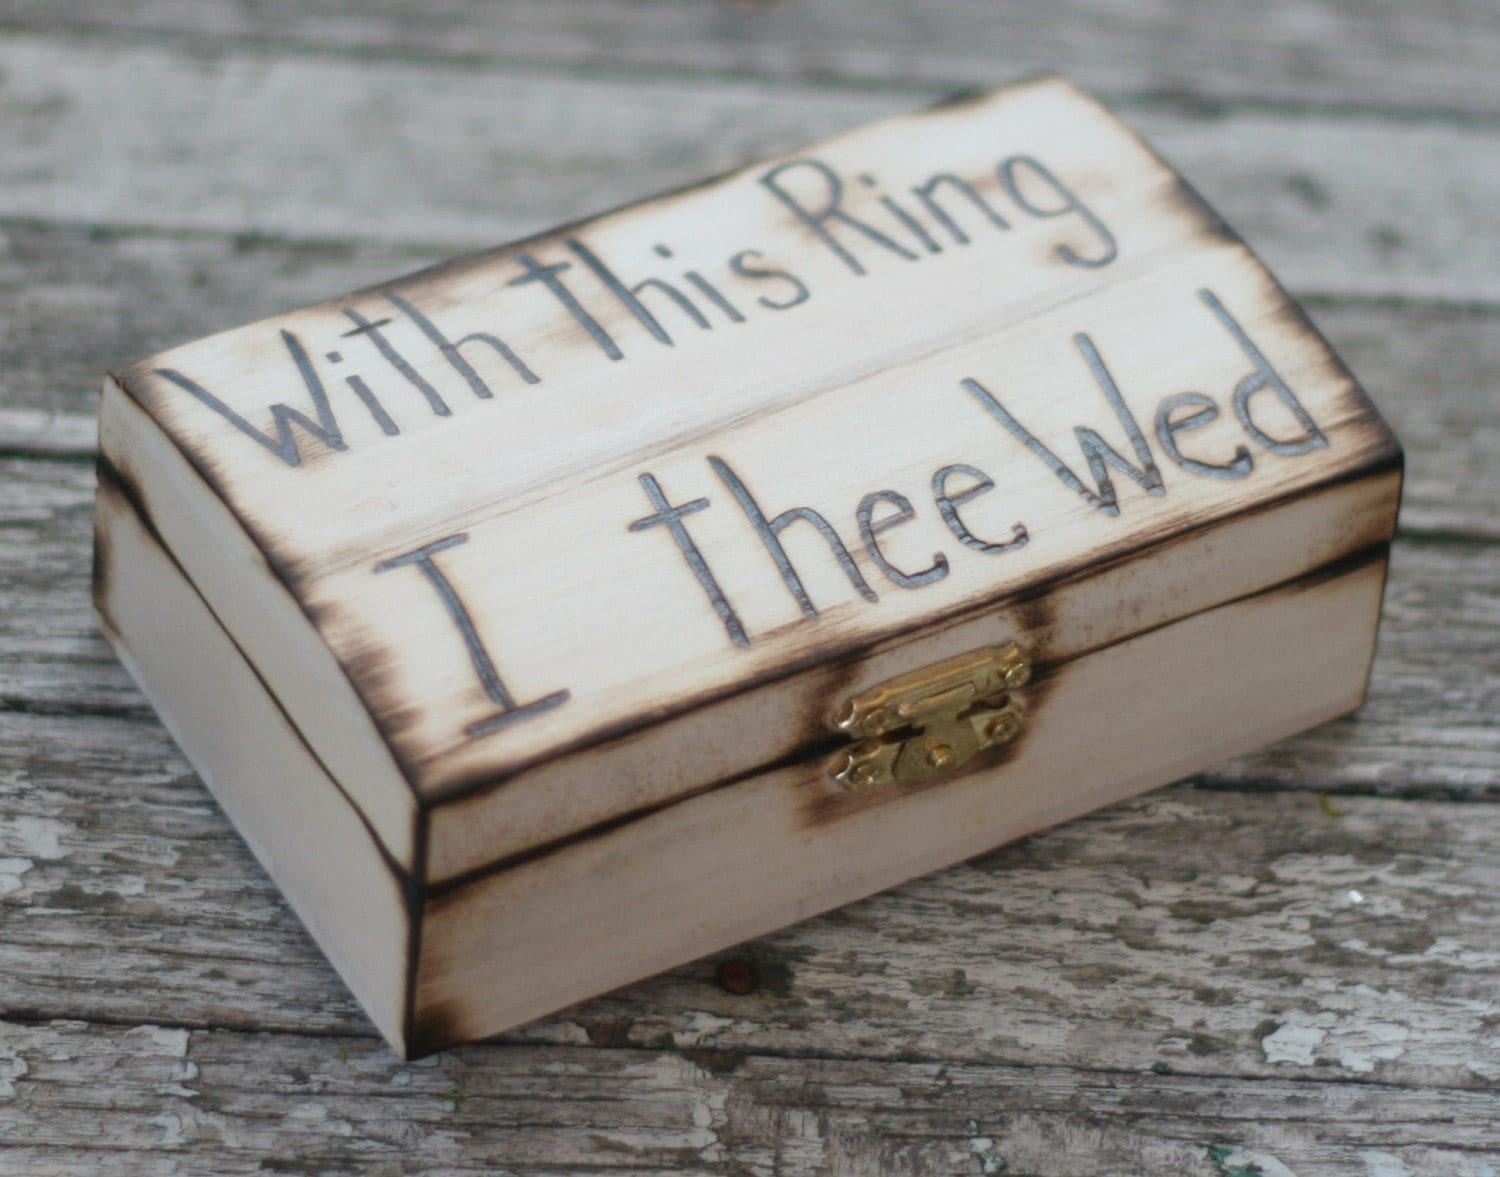 With This Ring I Thee Wed Rustic Woodland Western Beach Ring Bearer Pillow Ring Jewelry Box Personalized